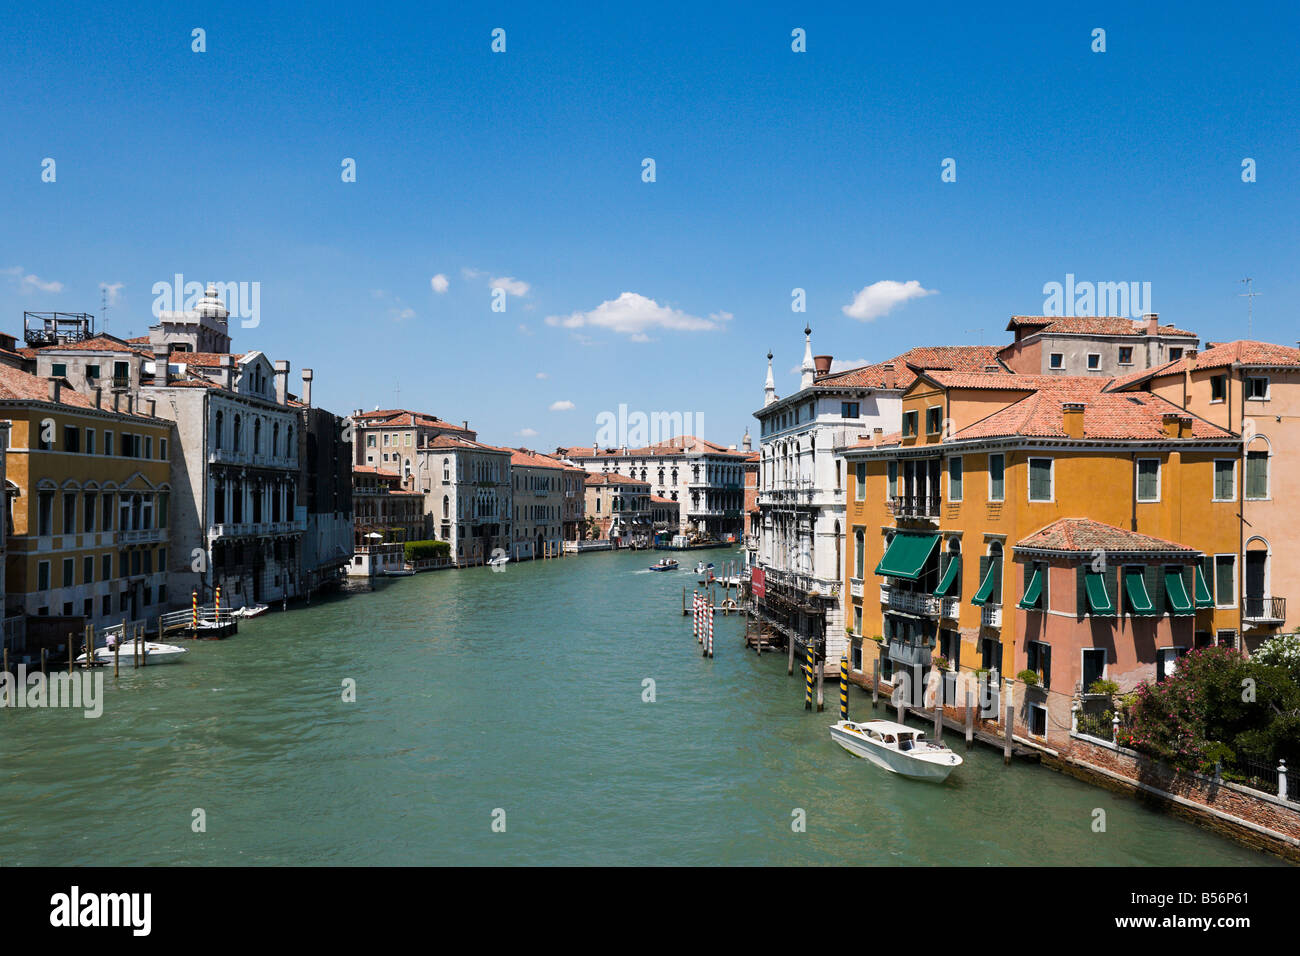 View of the Grand Canal from the Accademia Bridge, District of San Marco, Venice, Veneto, Italy - Stock Image